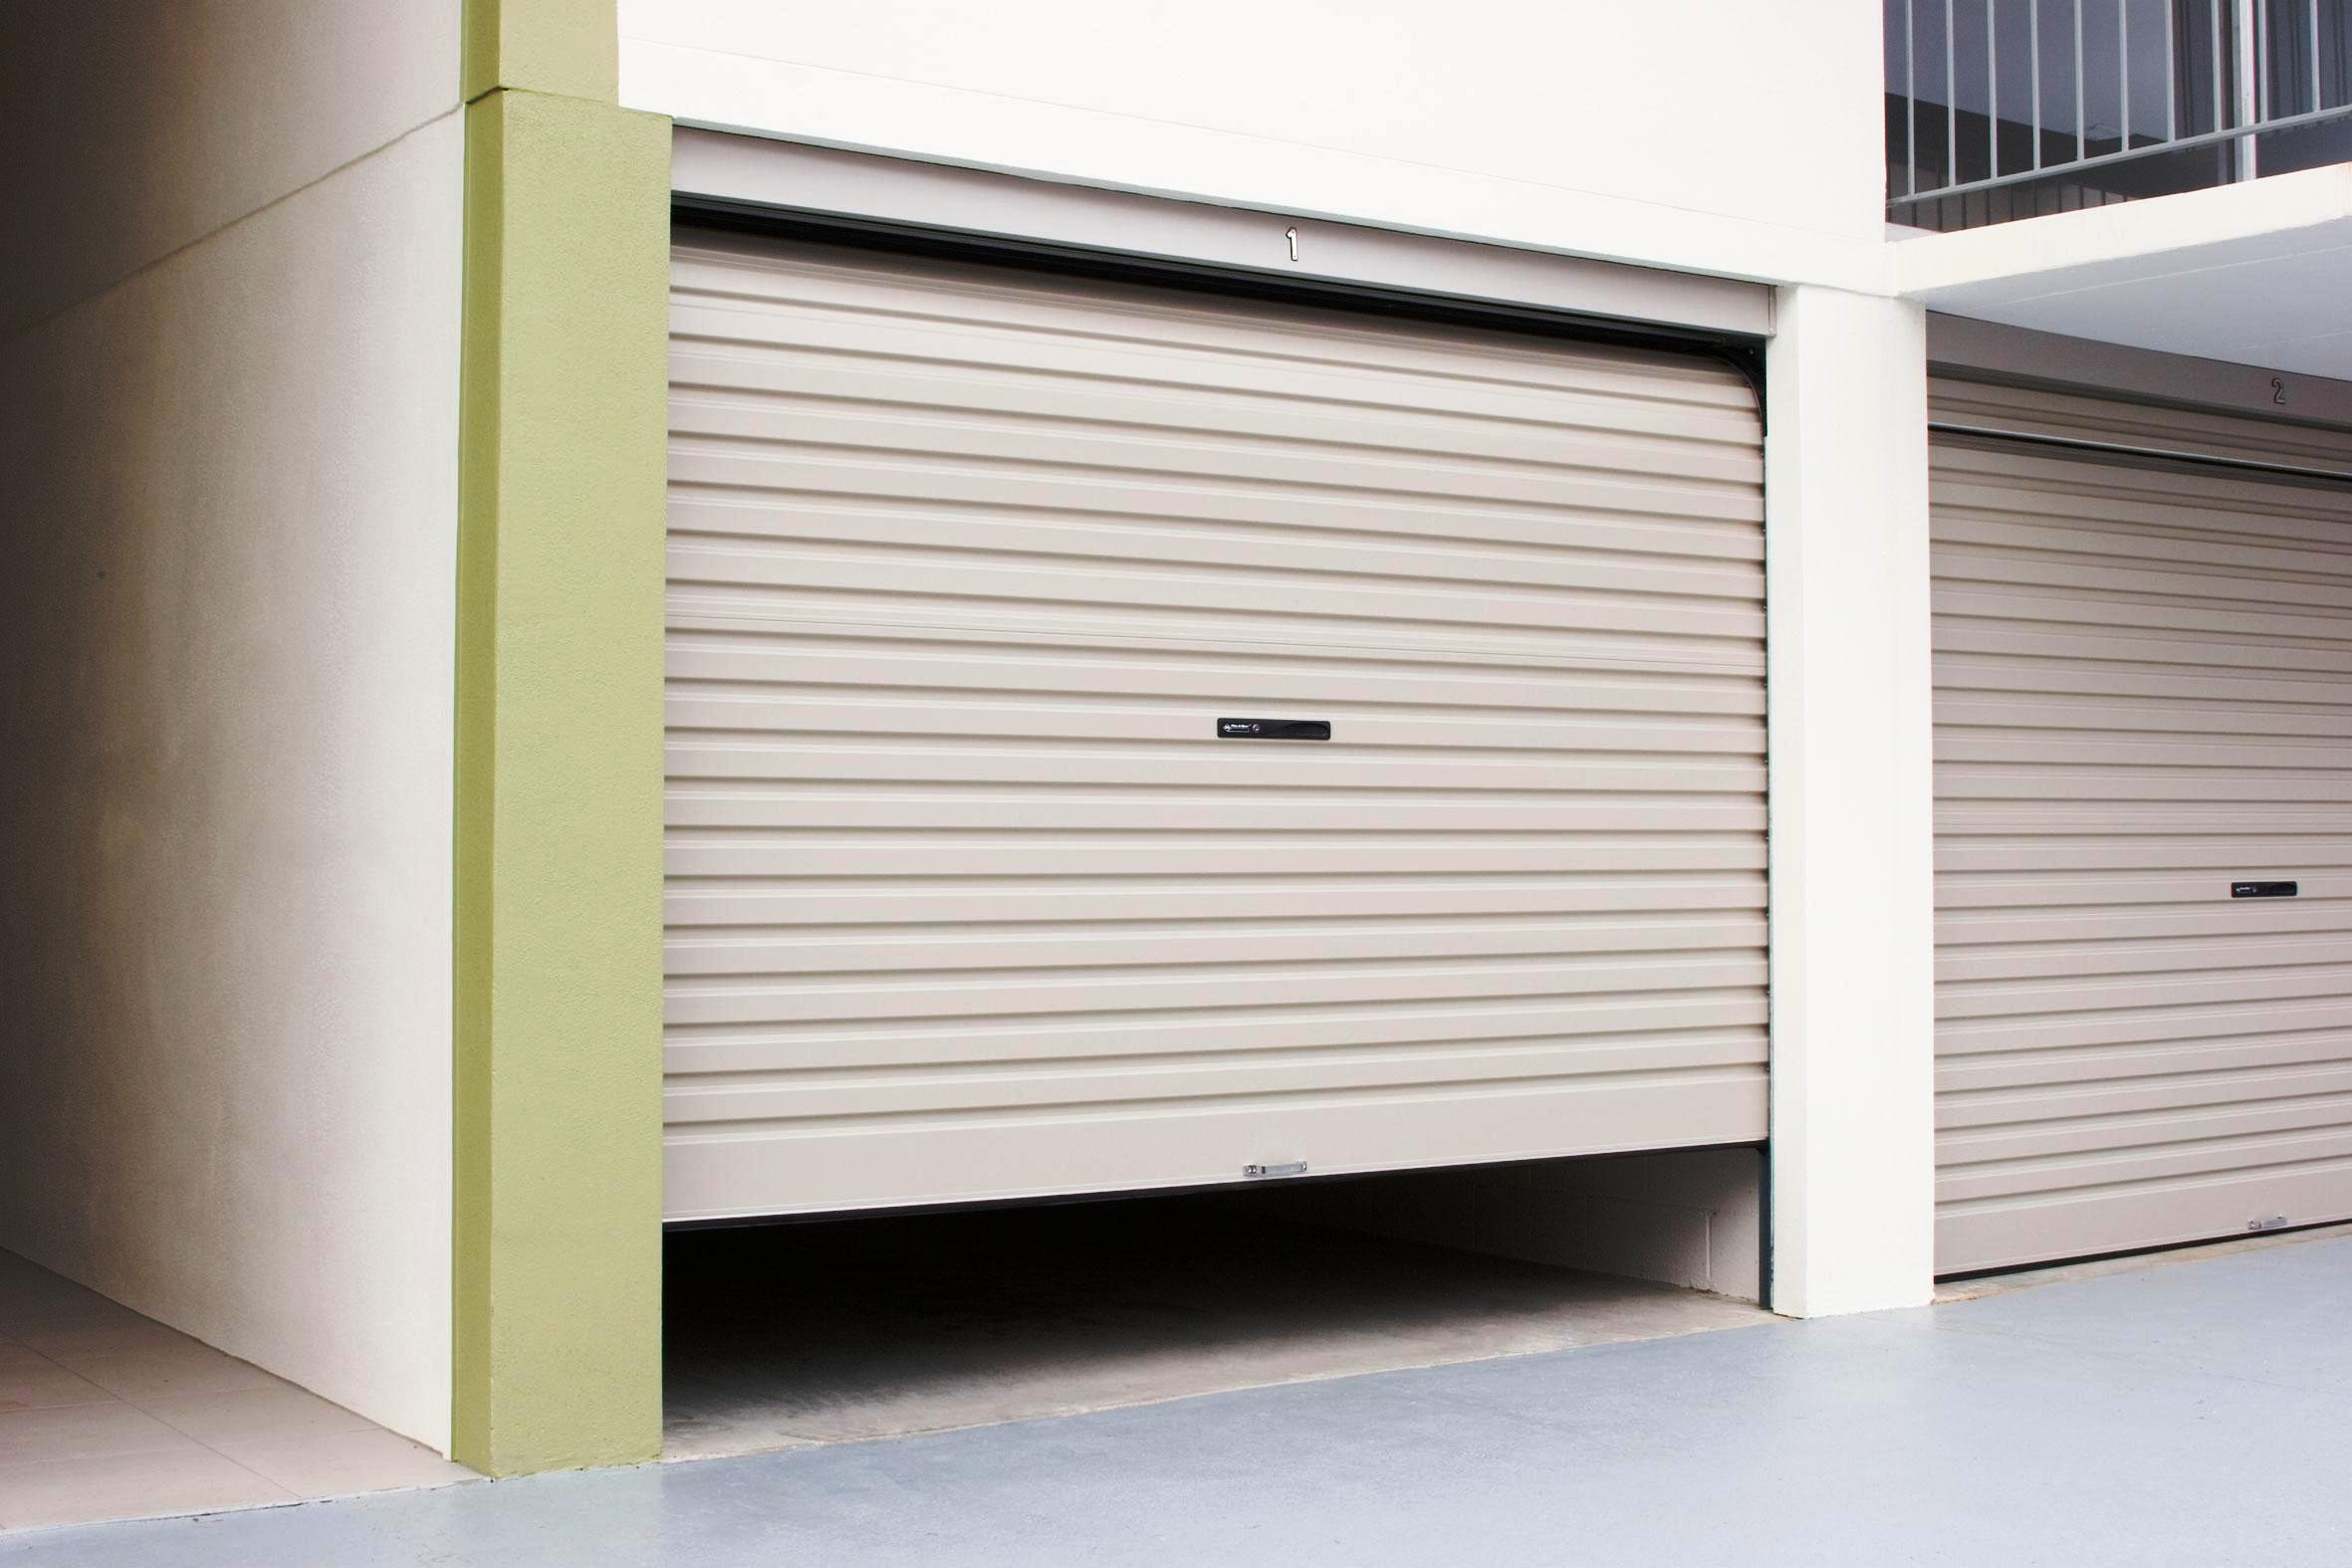 Automatic Garage Doors Prices Schmidt Gallery Design